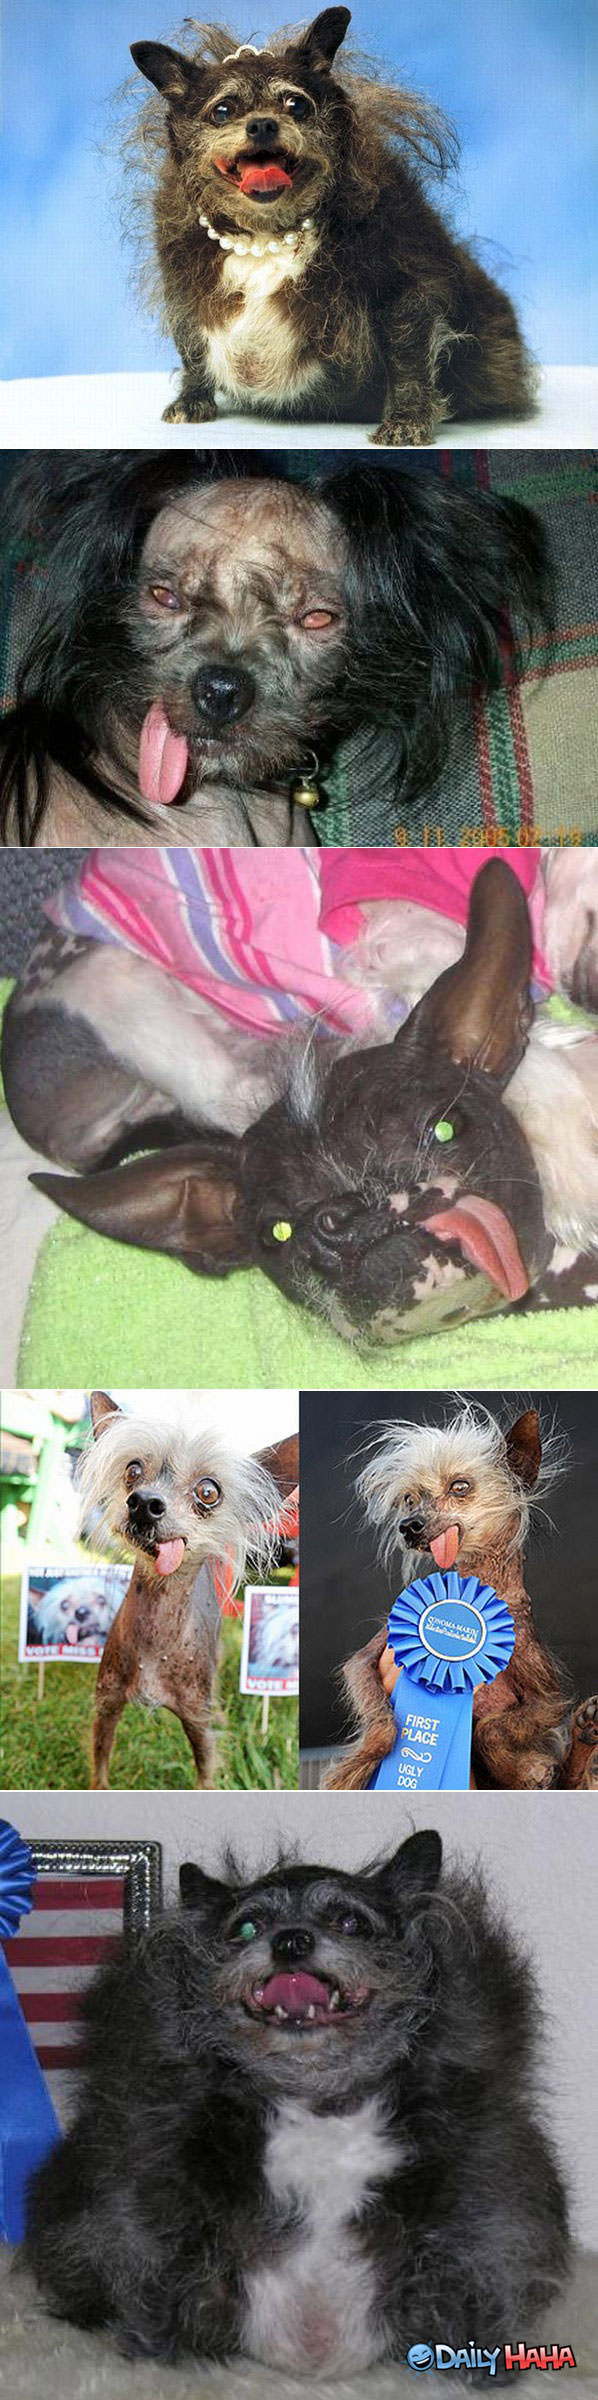 Ugly Dogs funny picture